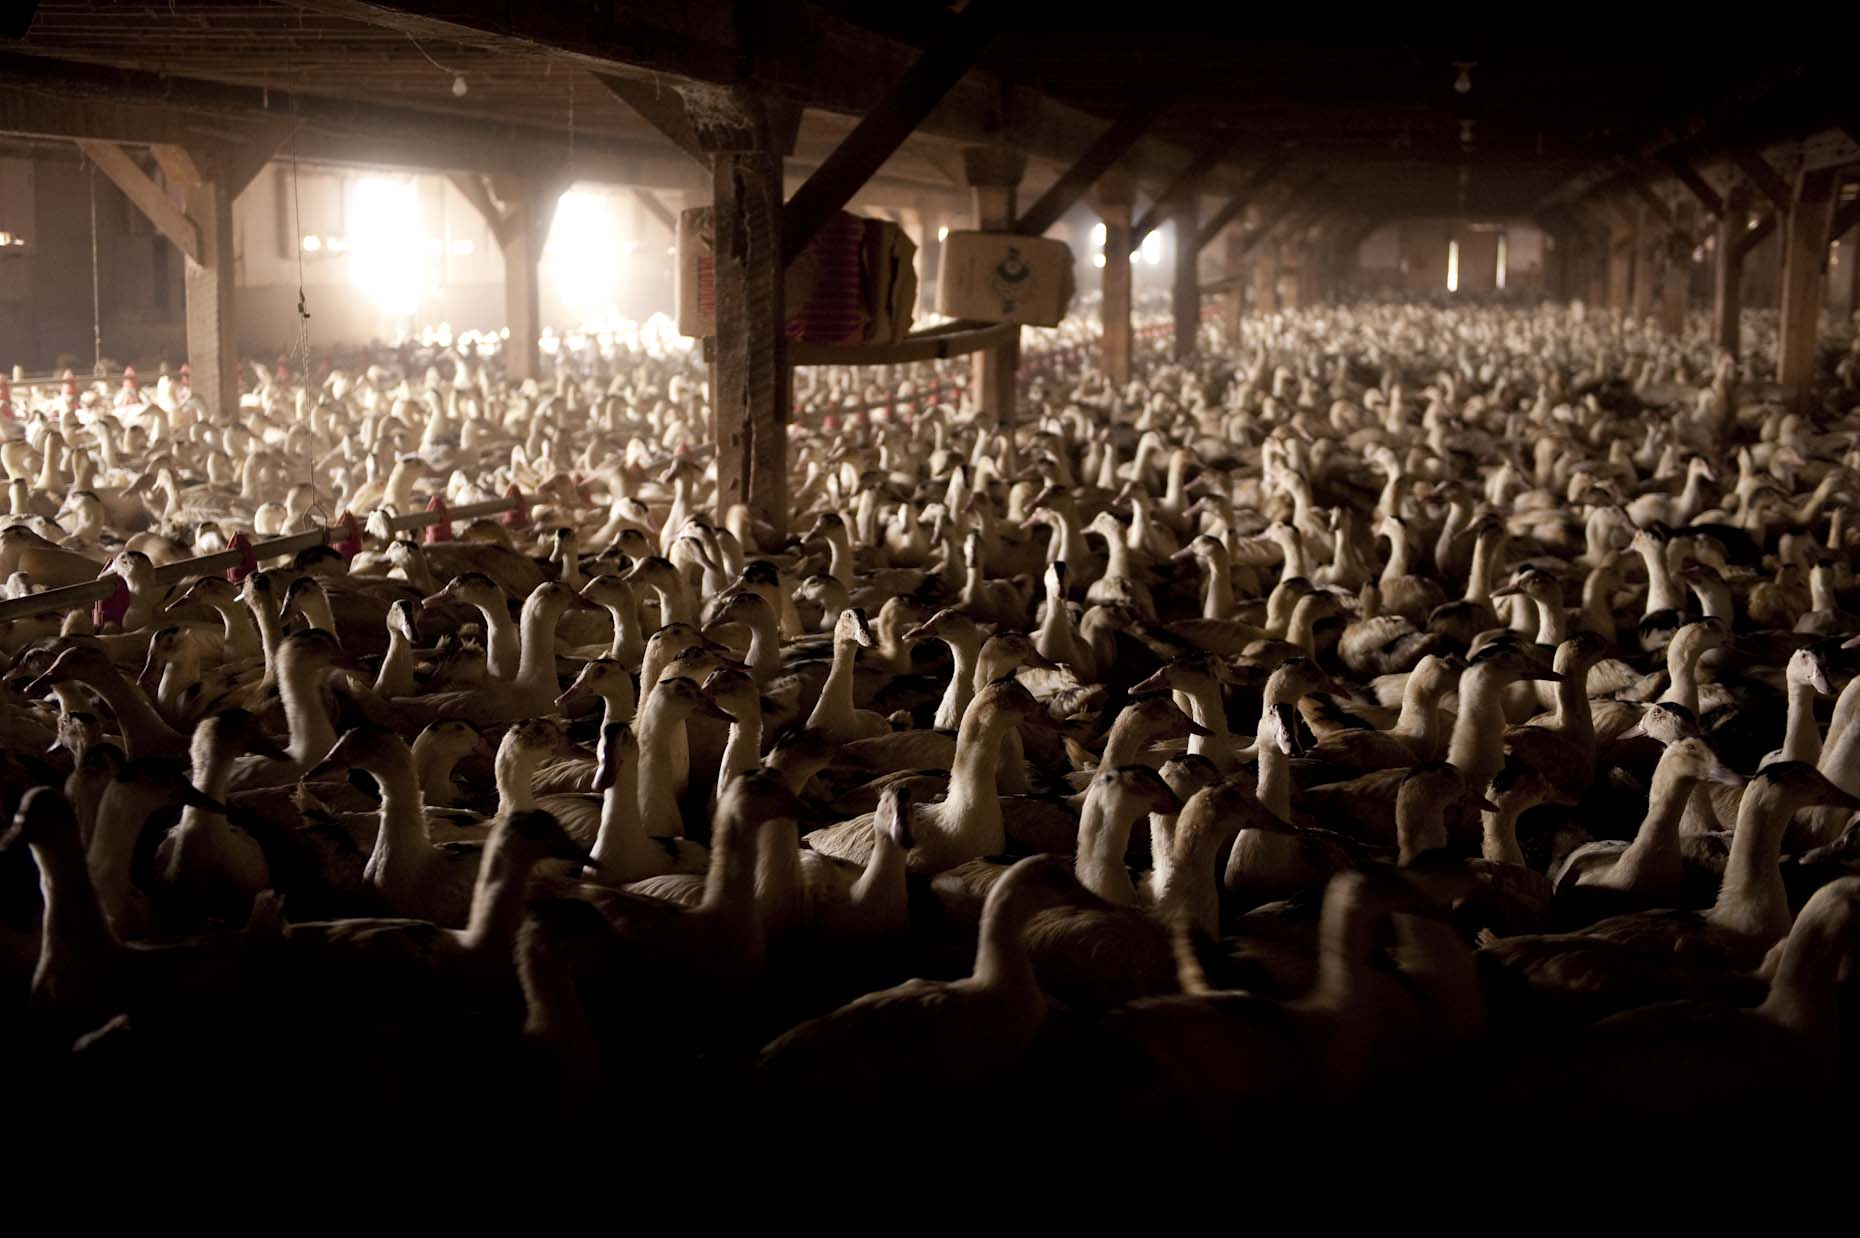 Ducks in barn for gavage